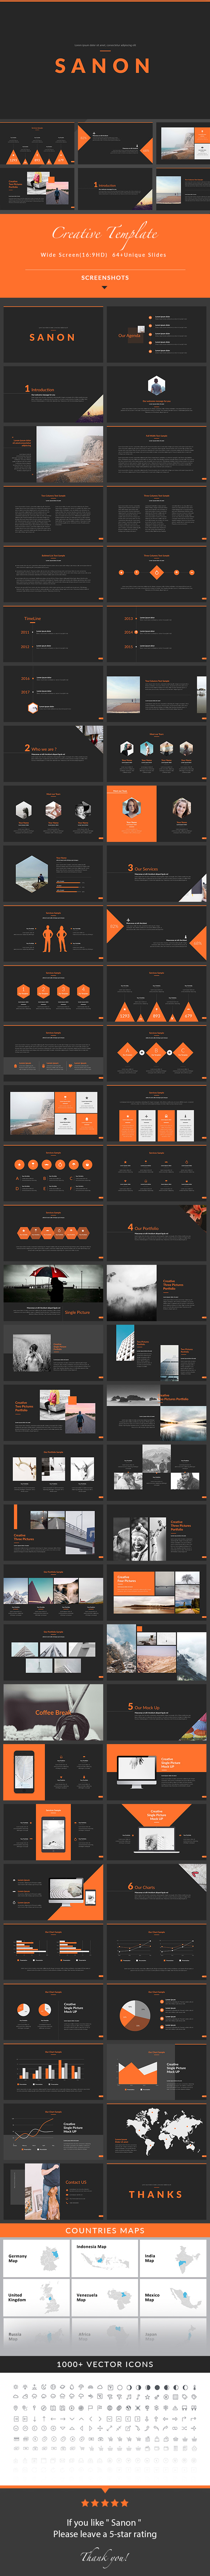 Sanon - Keynote Presentation Template - Creative Keynote Templates